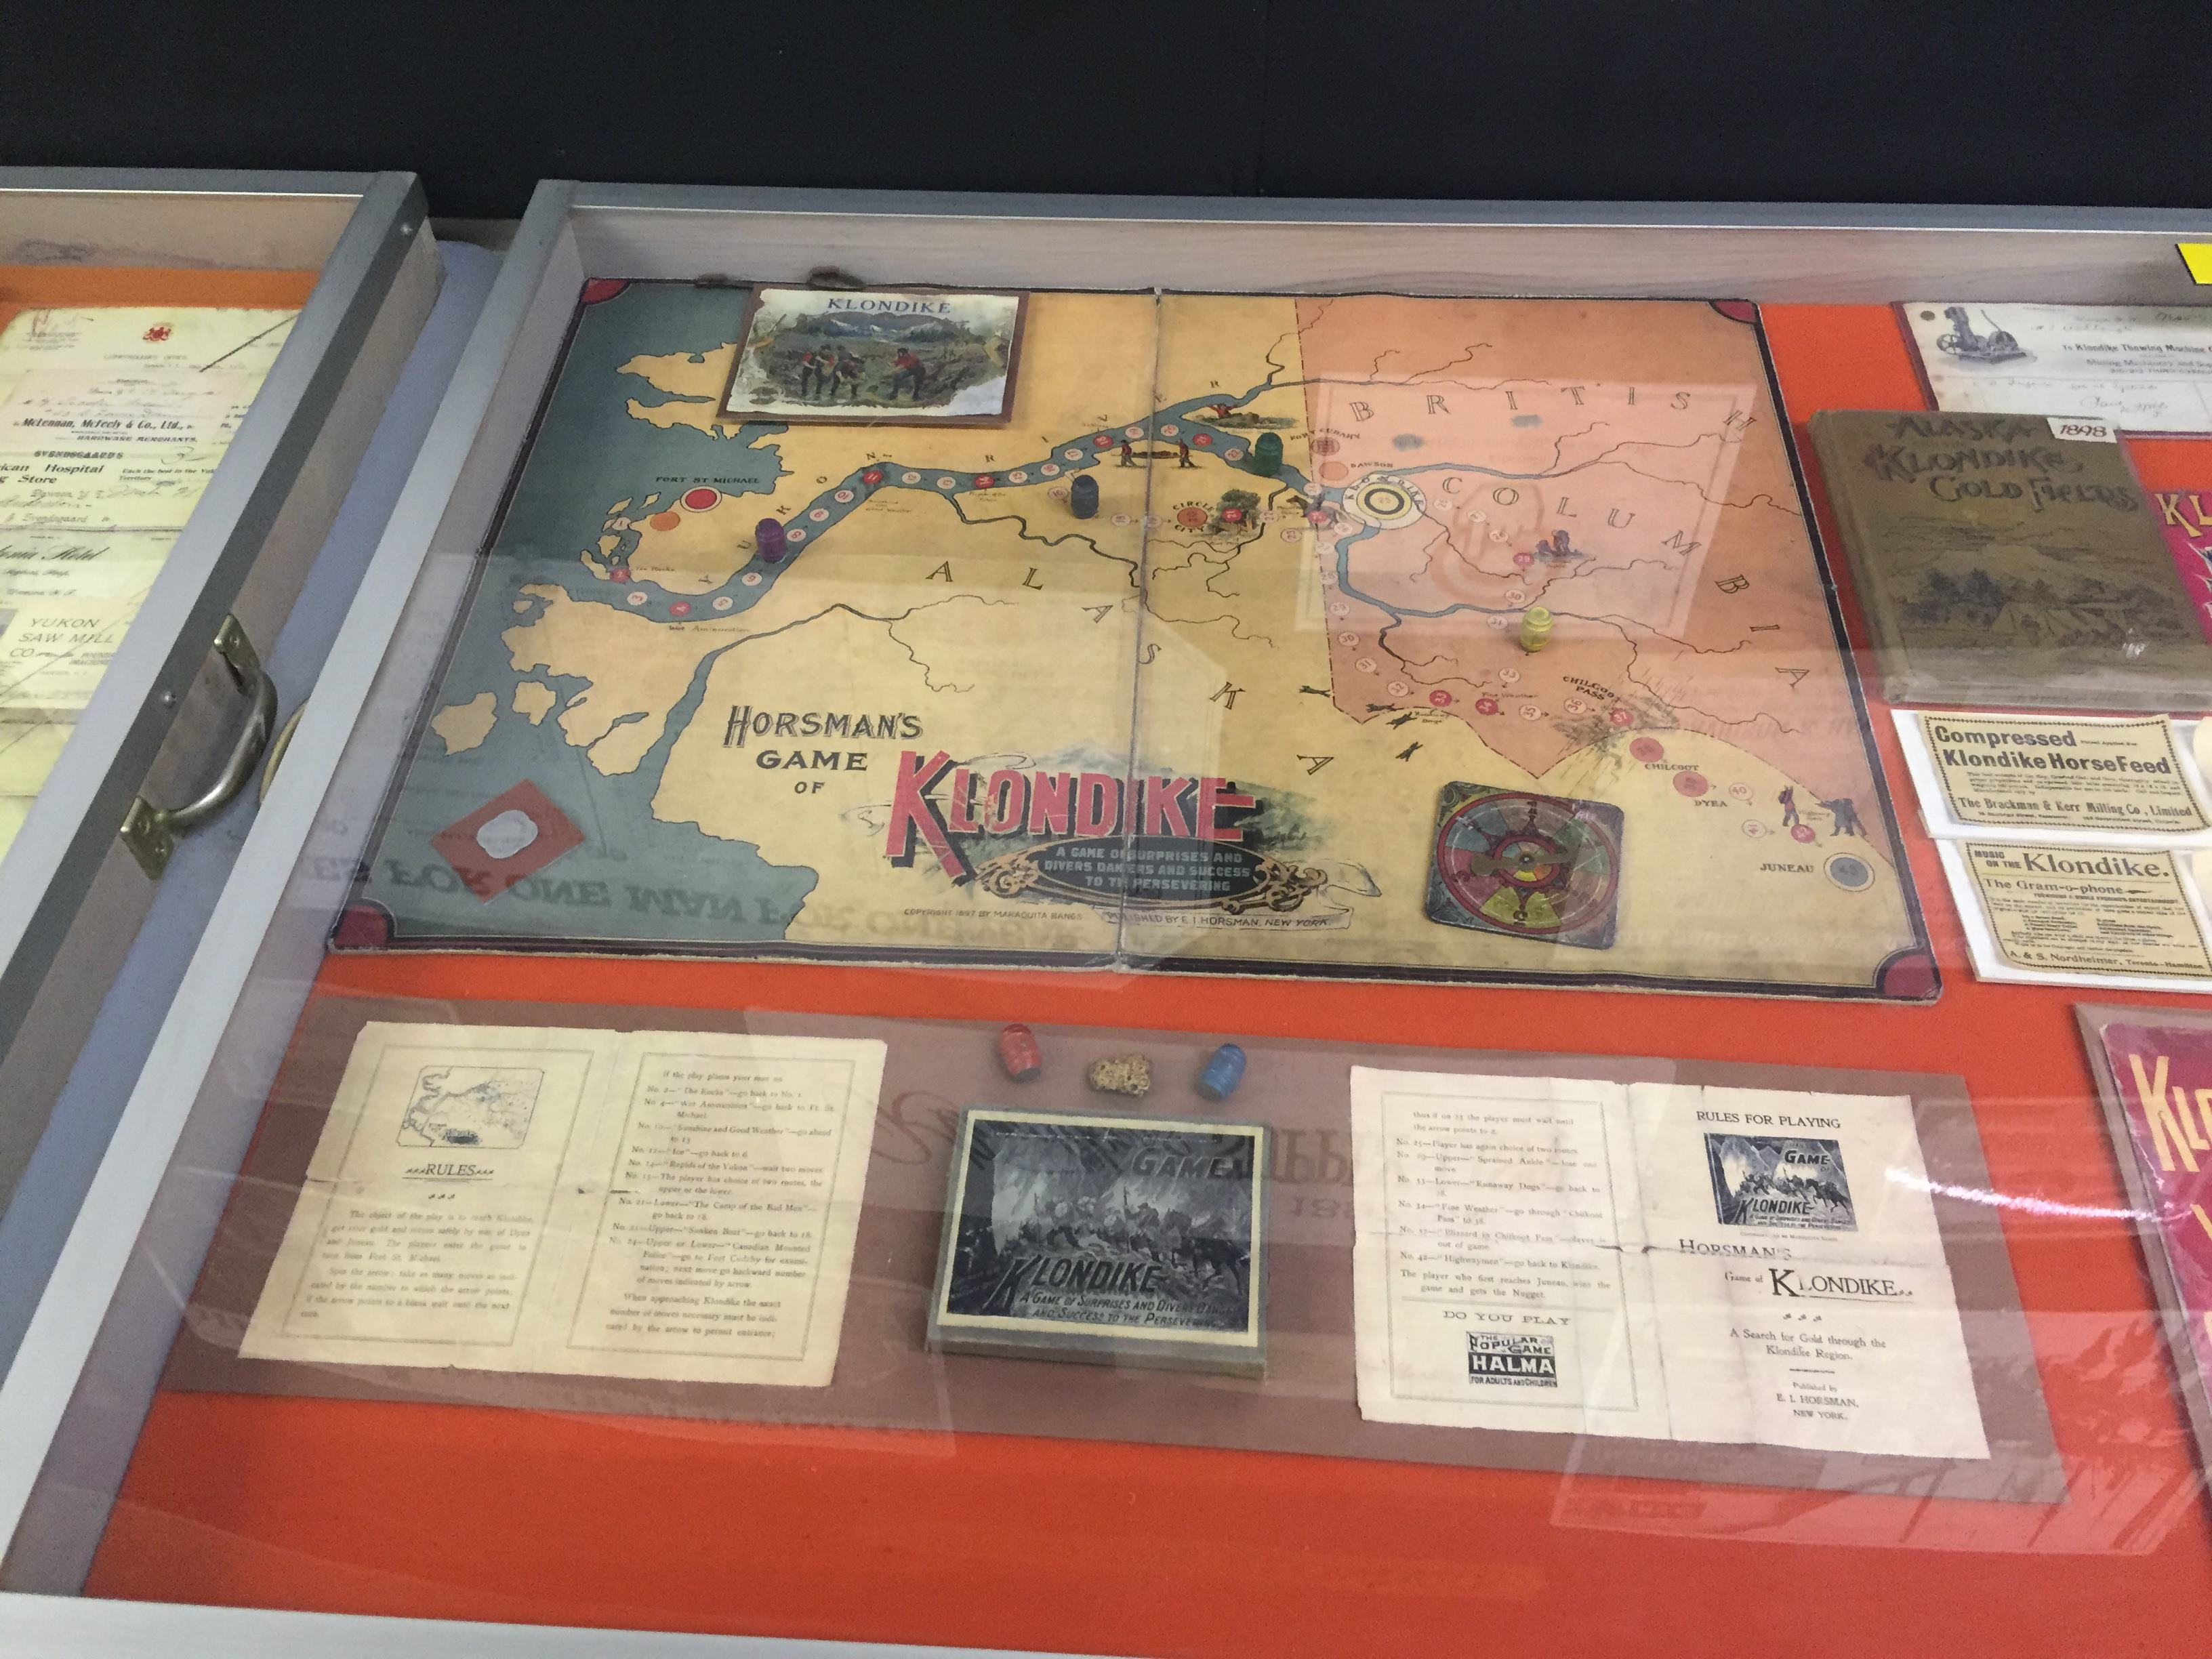 Horsman's game of Klondike, launched in 1897